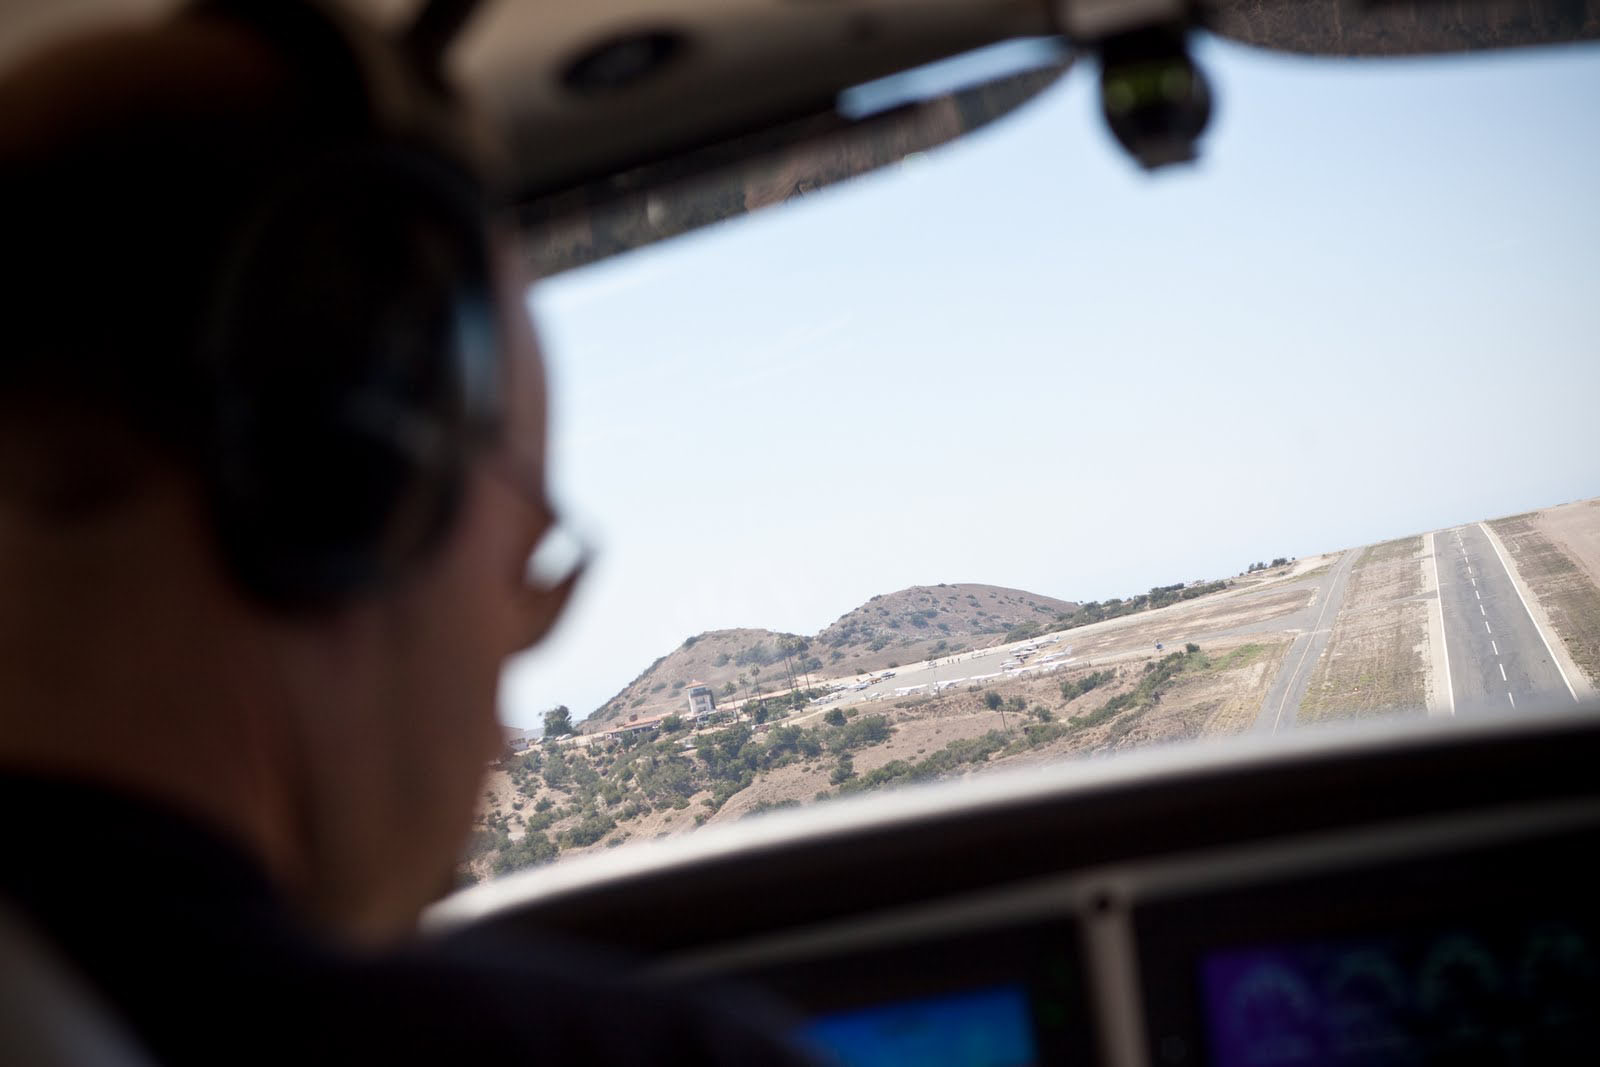 On final approach to runway 22.  The airport sits on top of a bluff, with steep drop-offs at both ends.